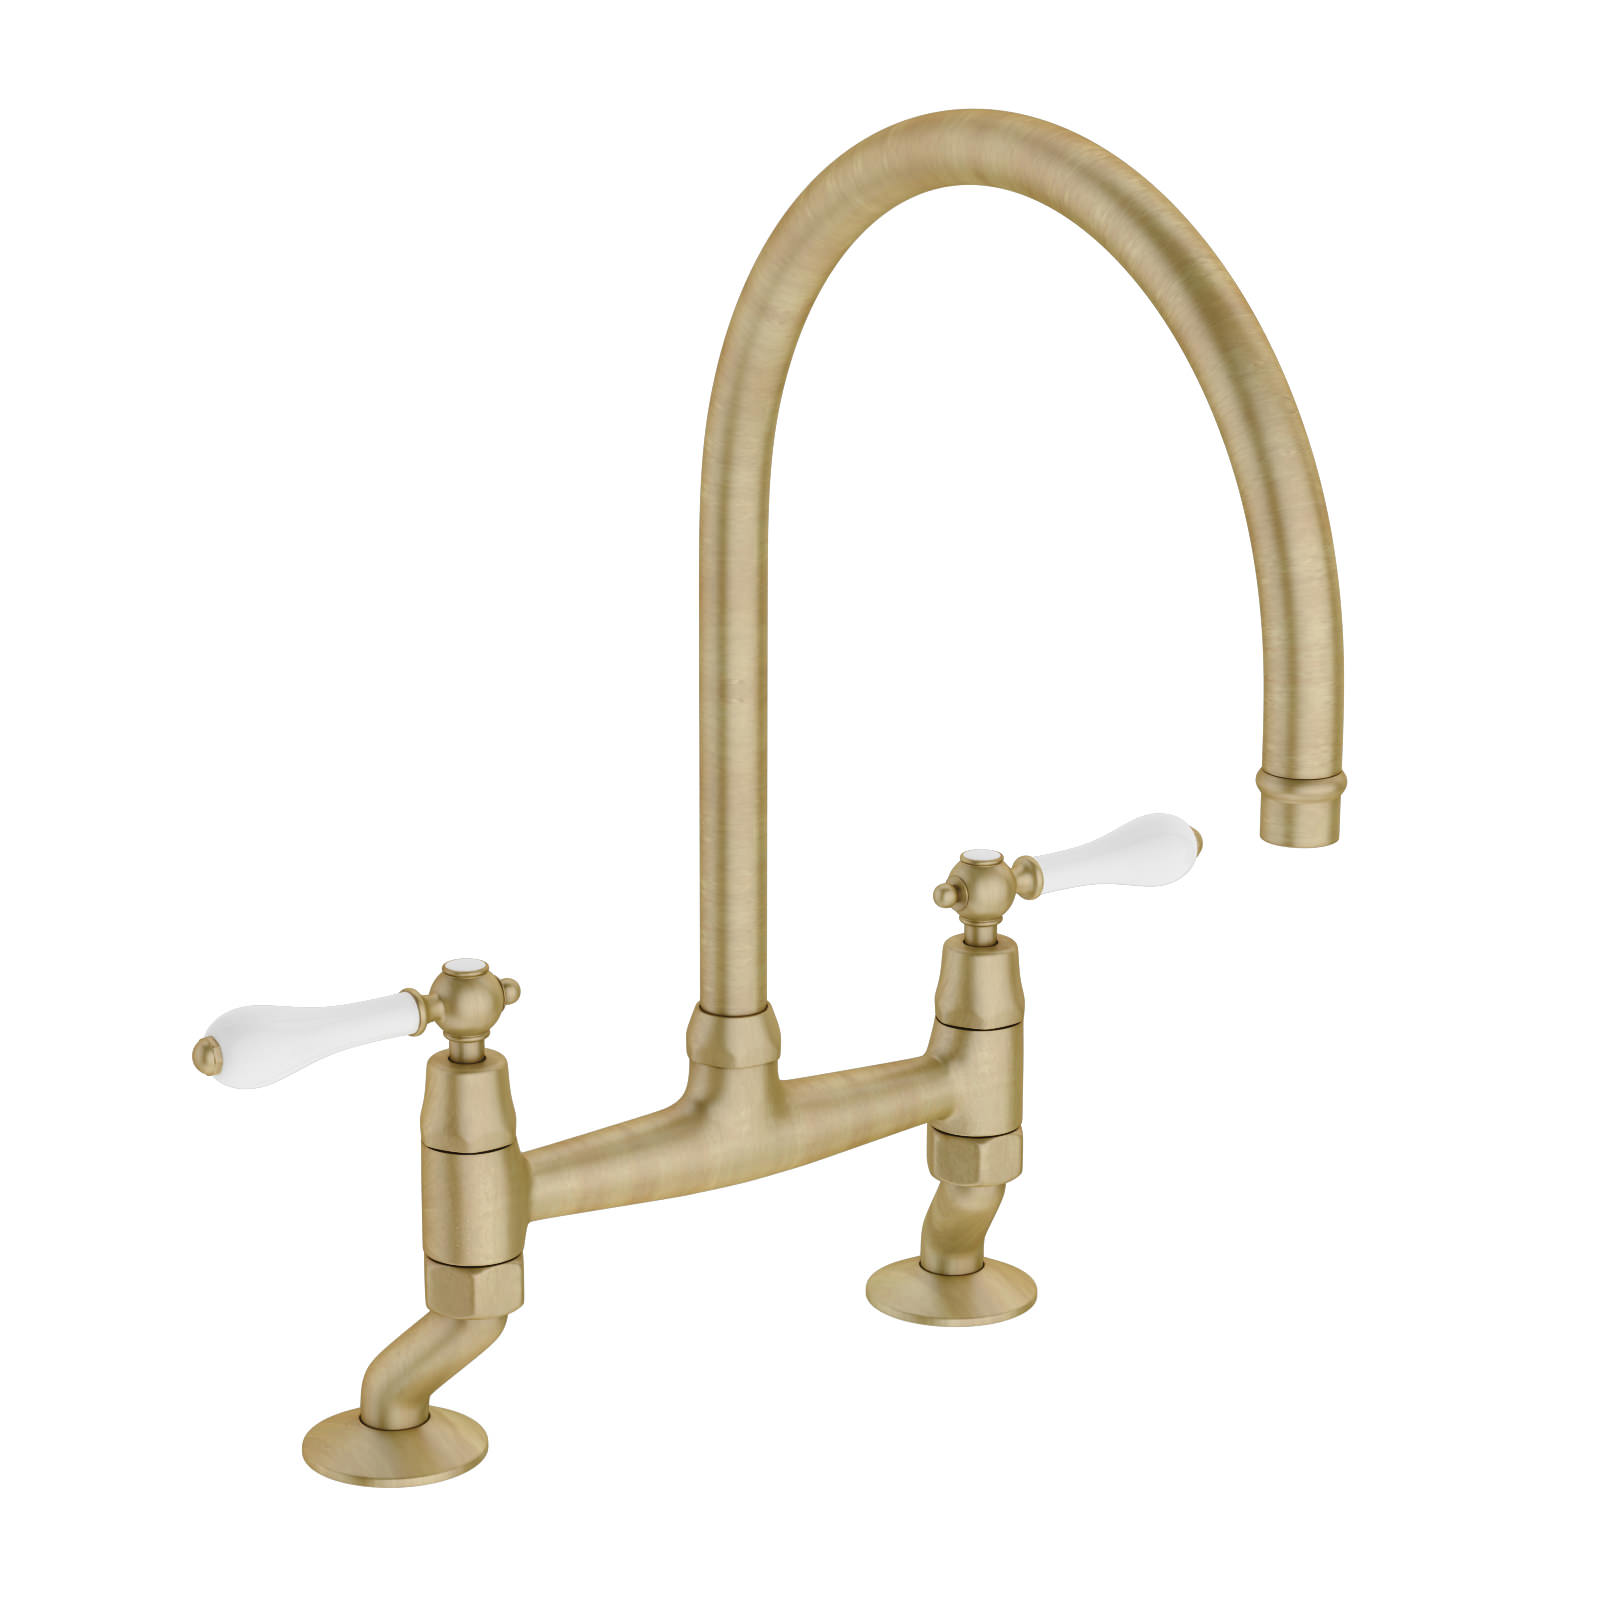 Abode Ludlow Bridge Antique Bronze Kitchen Mixer Tap